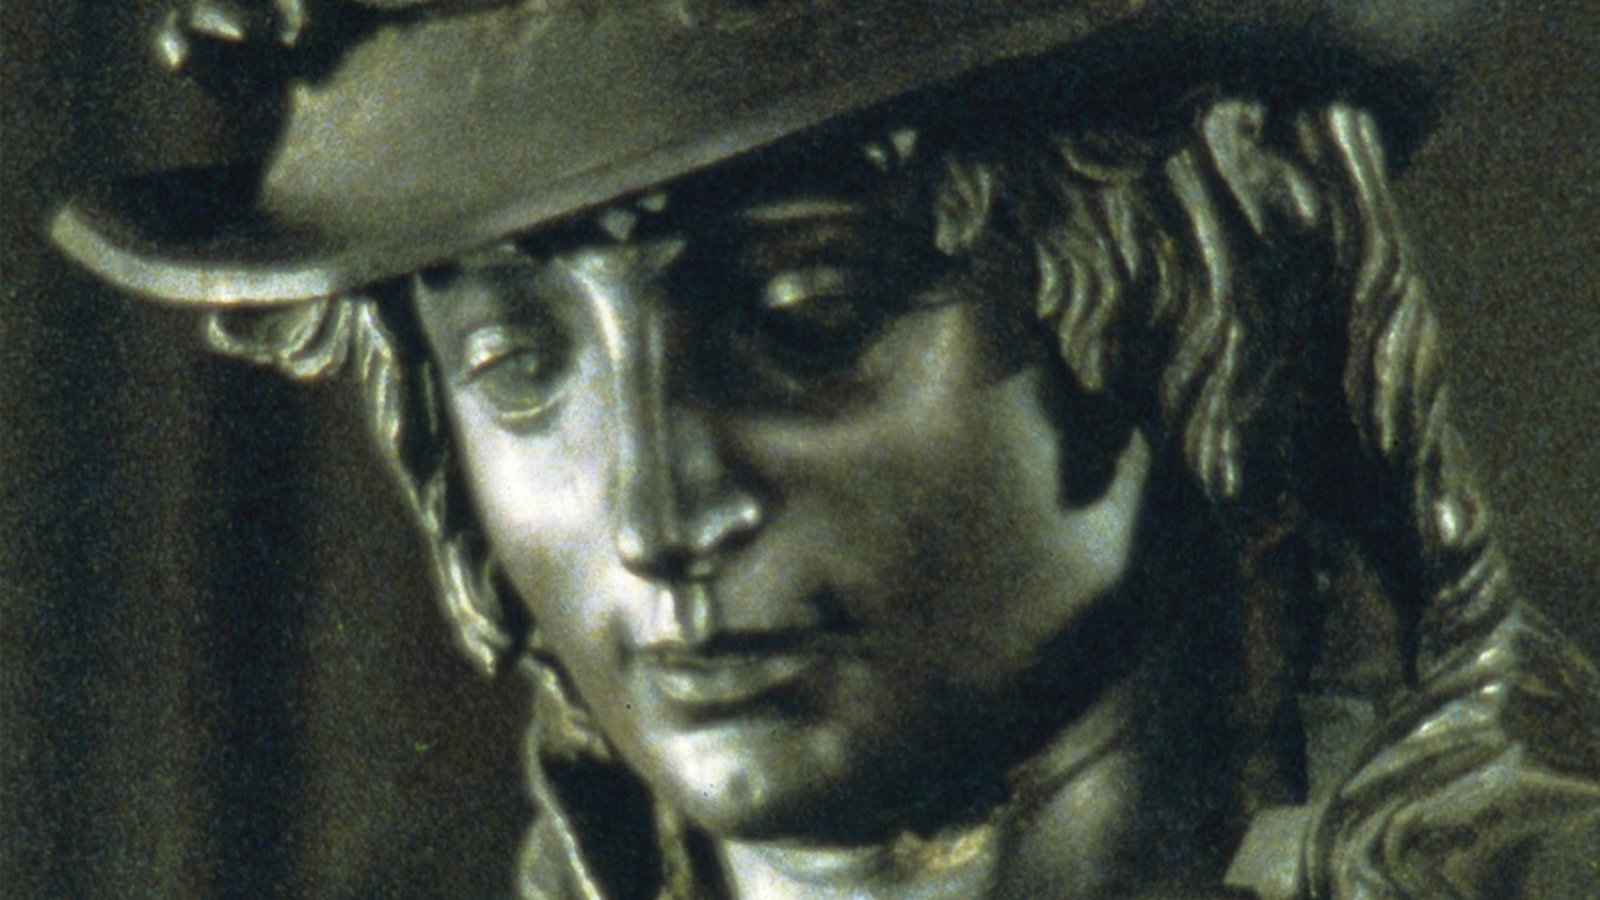 Donatello - The First Modern Sculptor